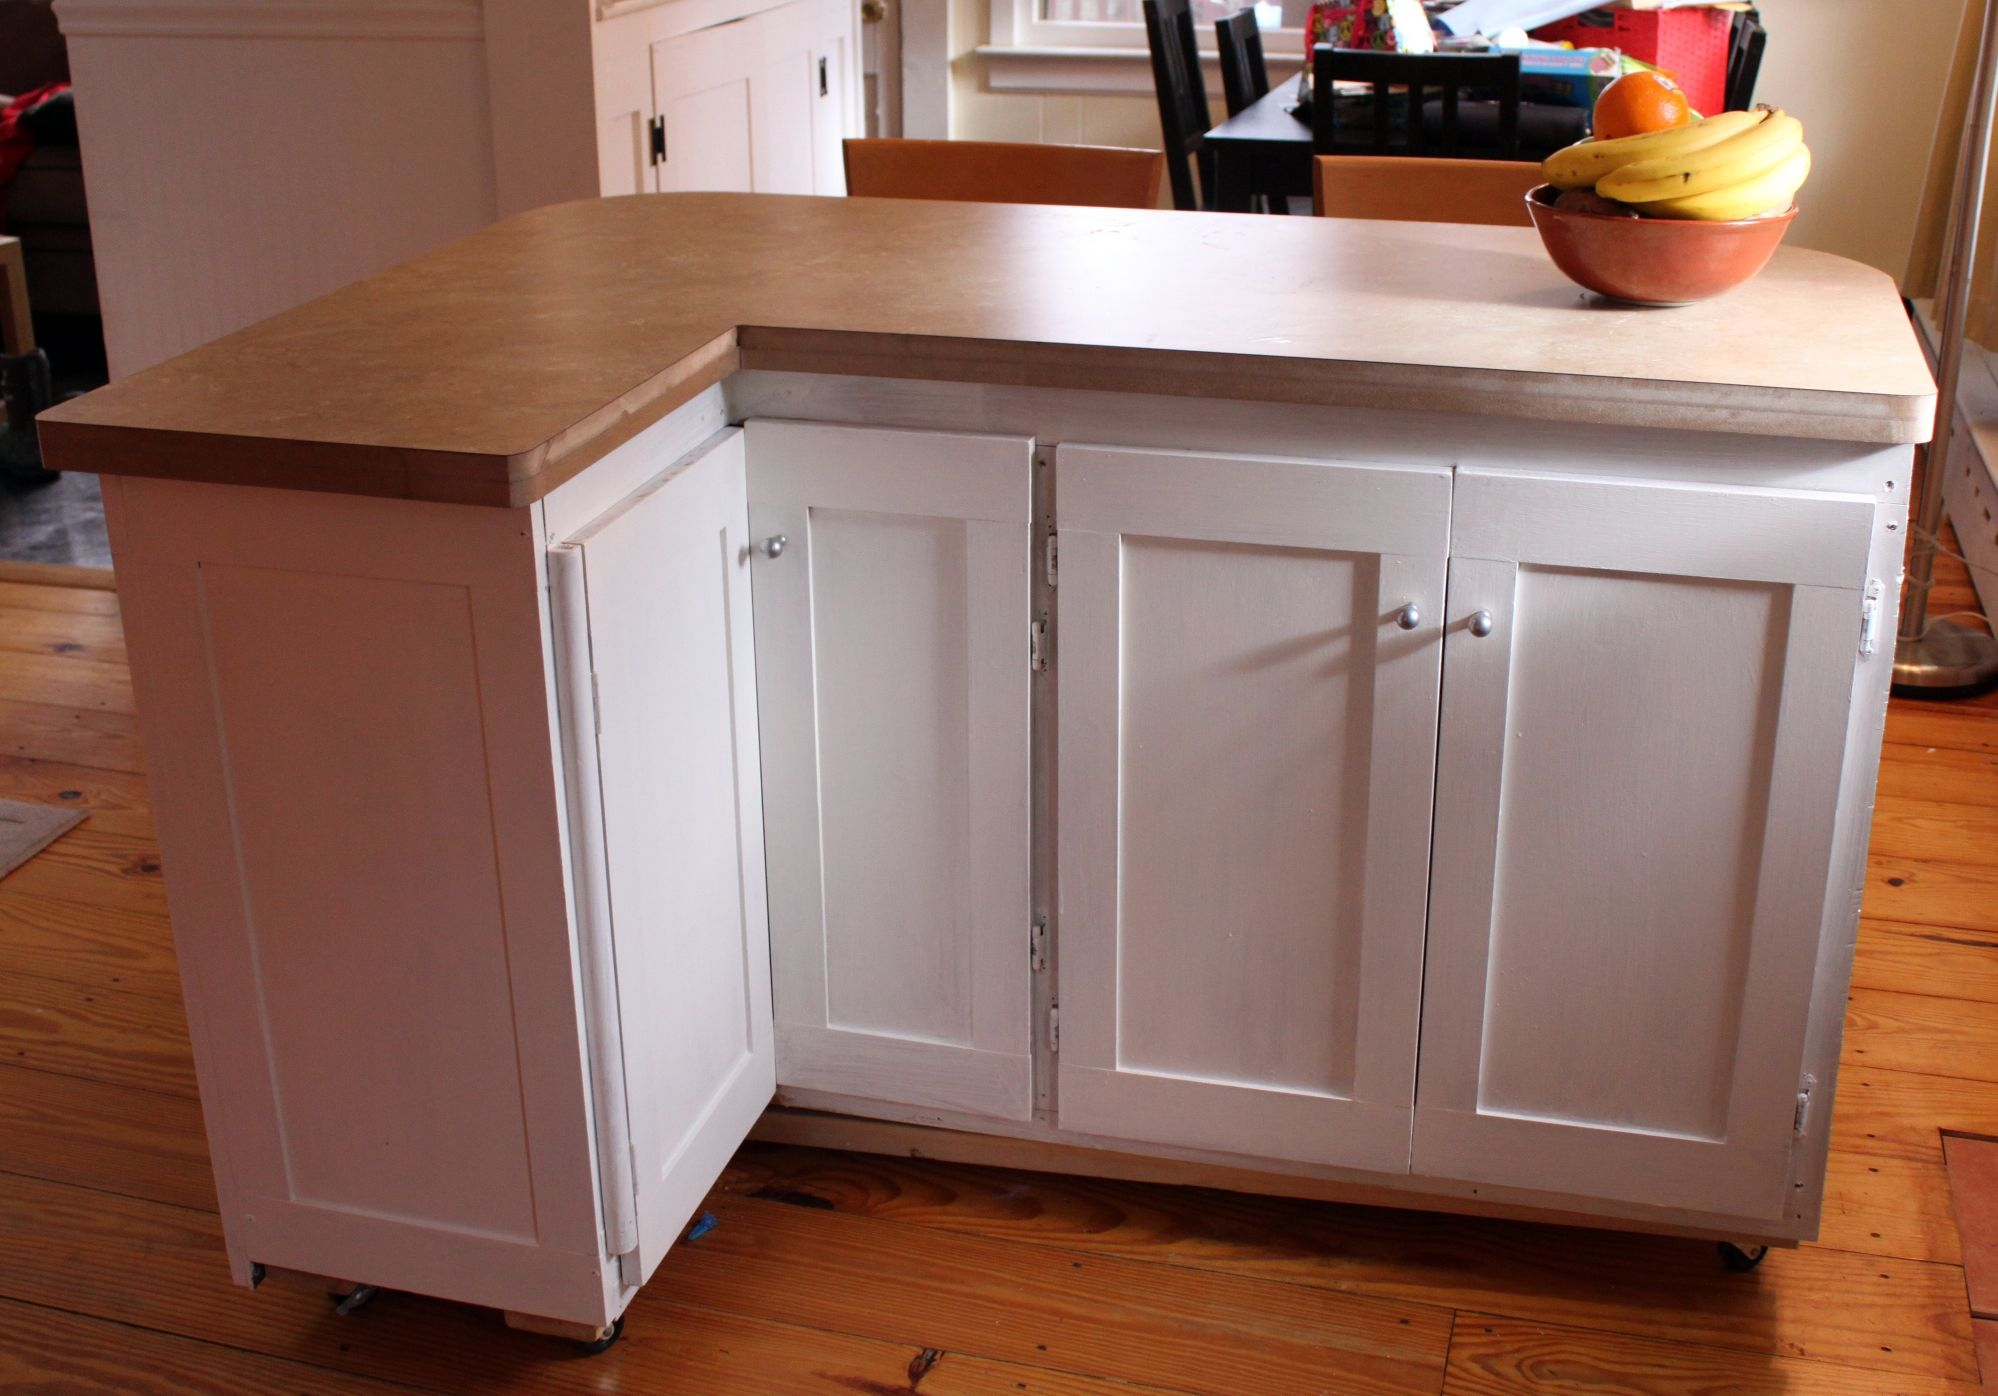 Make A Rolling Kitchen Island Out Of Cabinets Rolling Kitchen Island Portable Kitchen Island Kitchen Island Storage